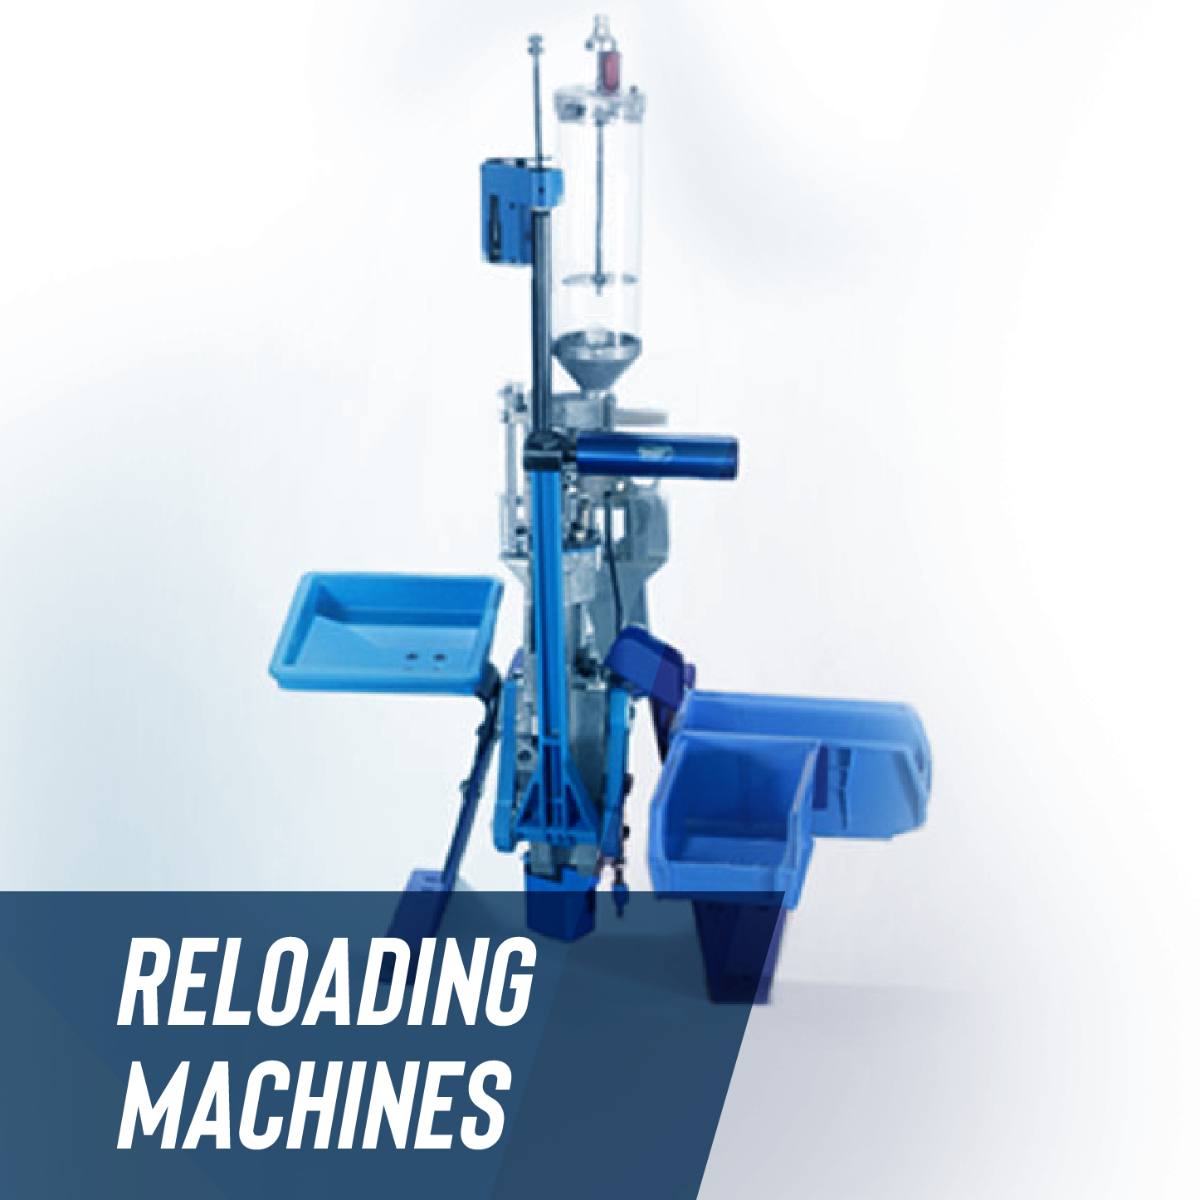 Reloading Equipment